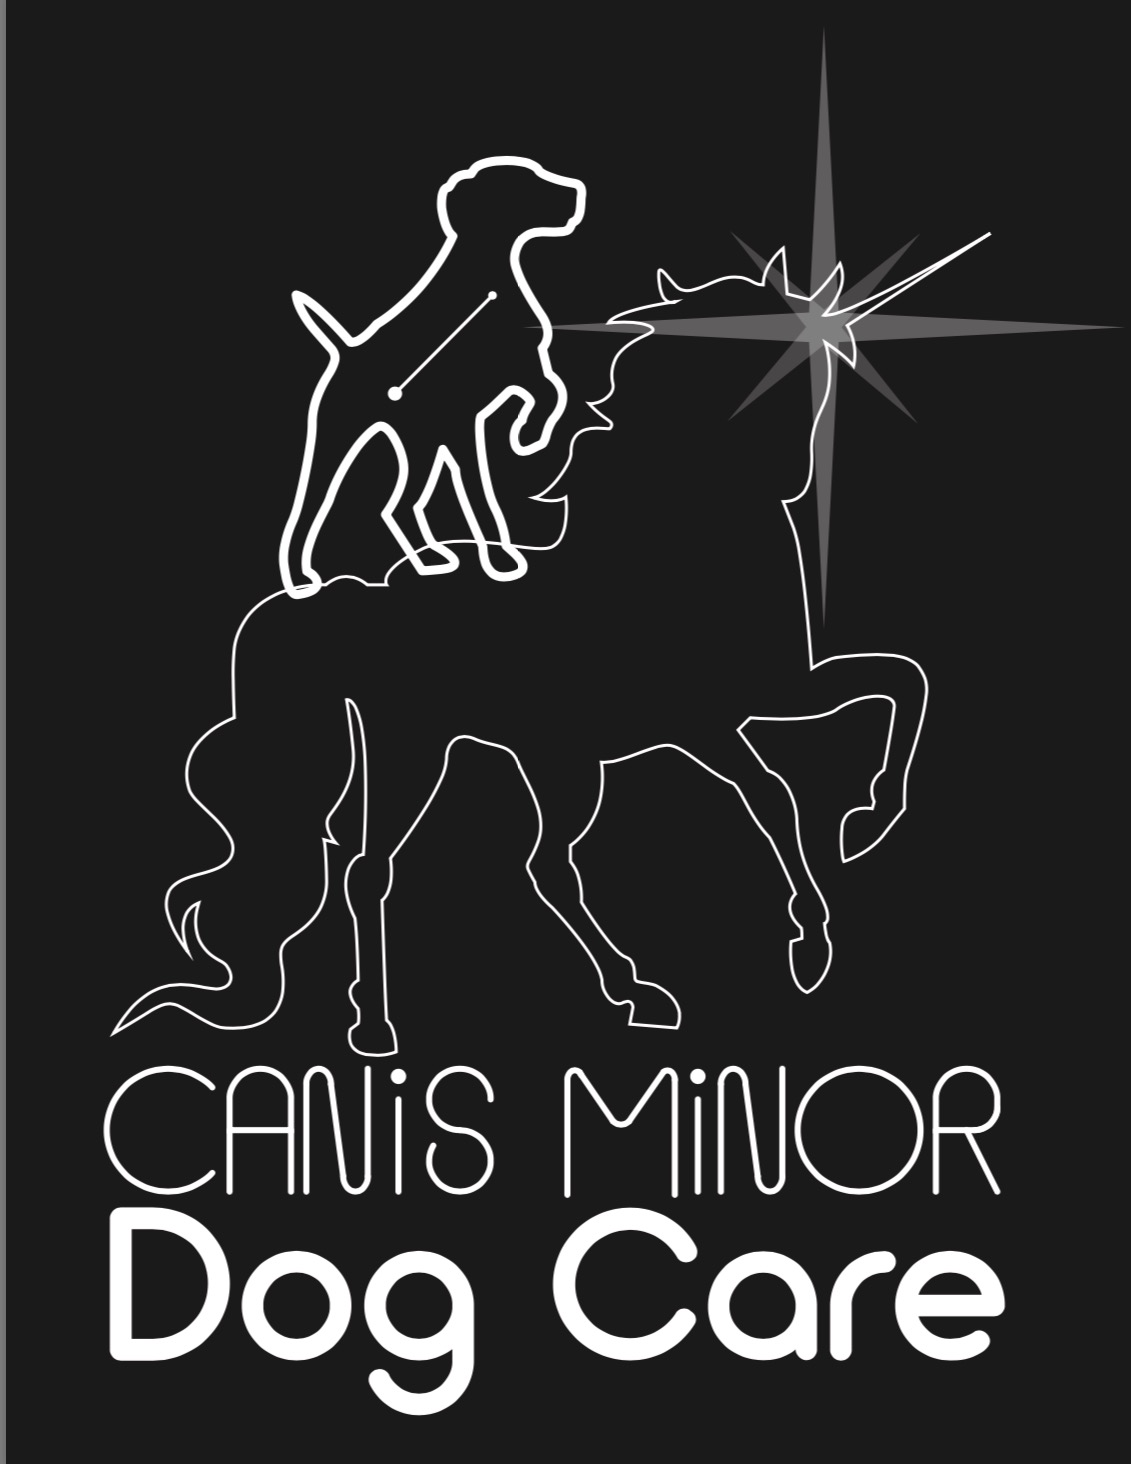 Canis Minor Dog Care